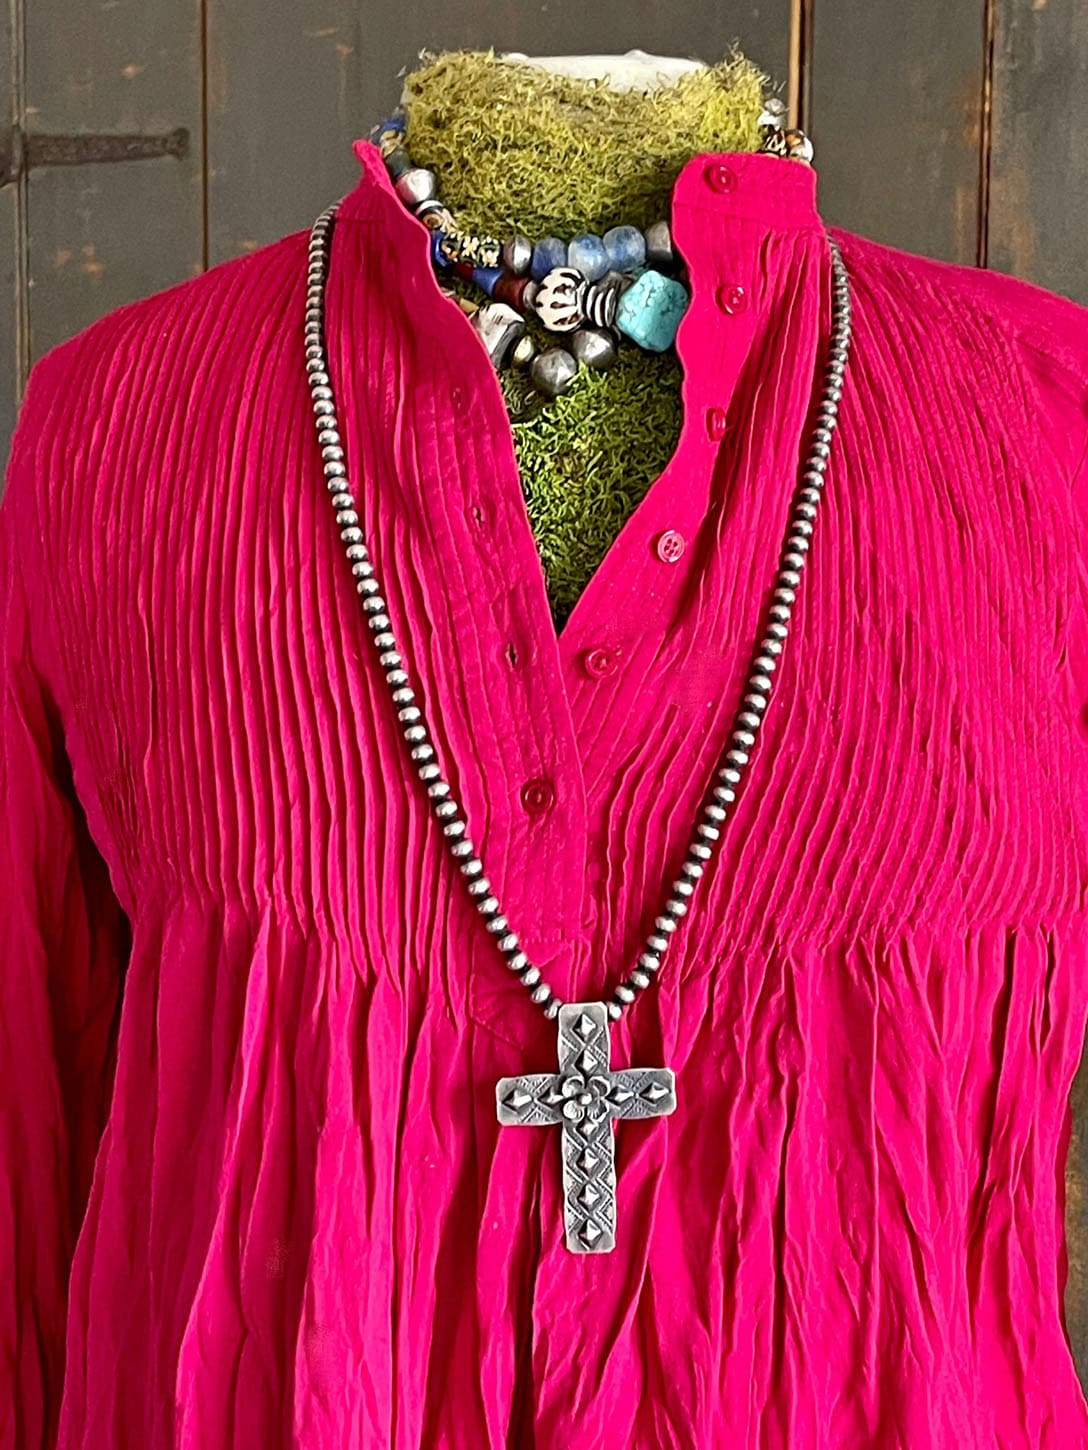 Sundance Mystic Falls Top with chunky necklace and navajo pearls